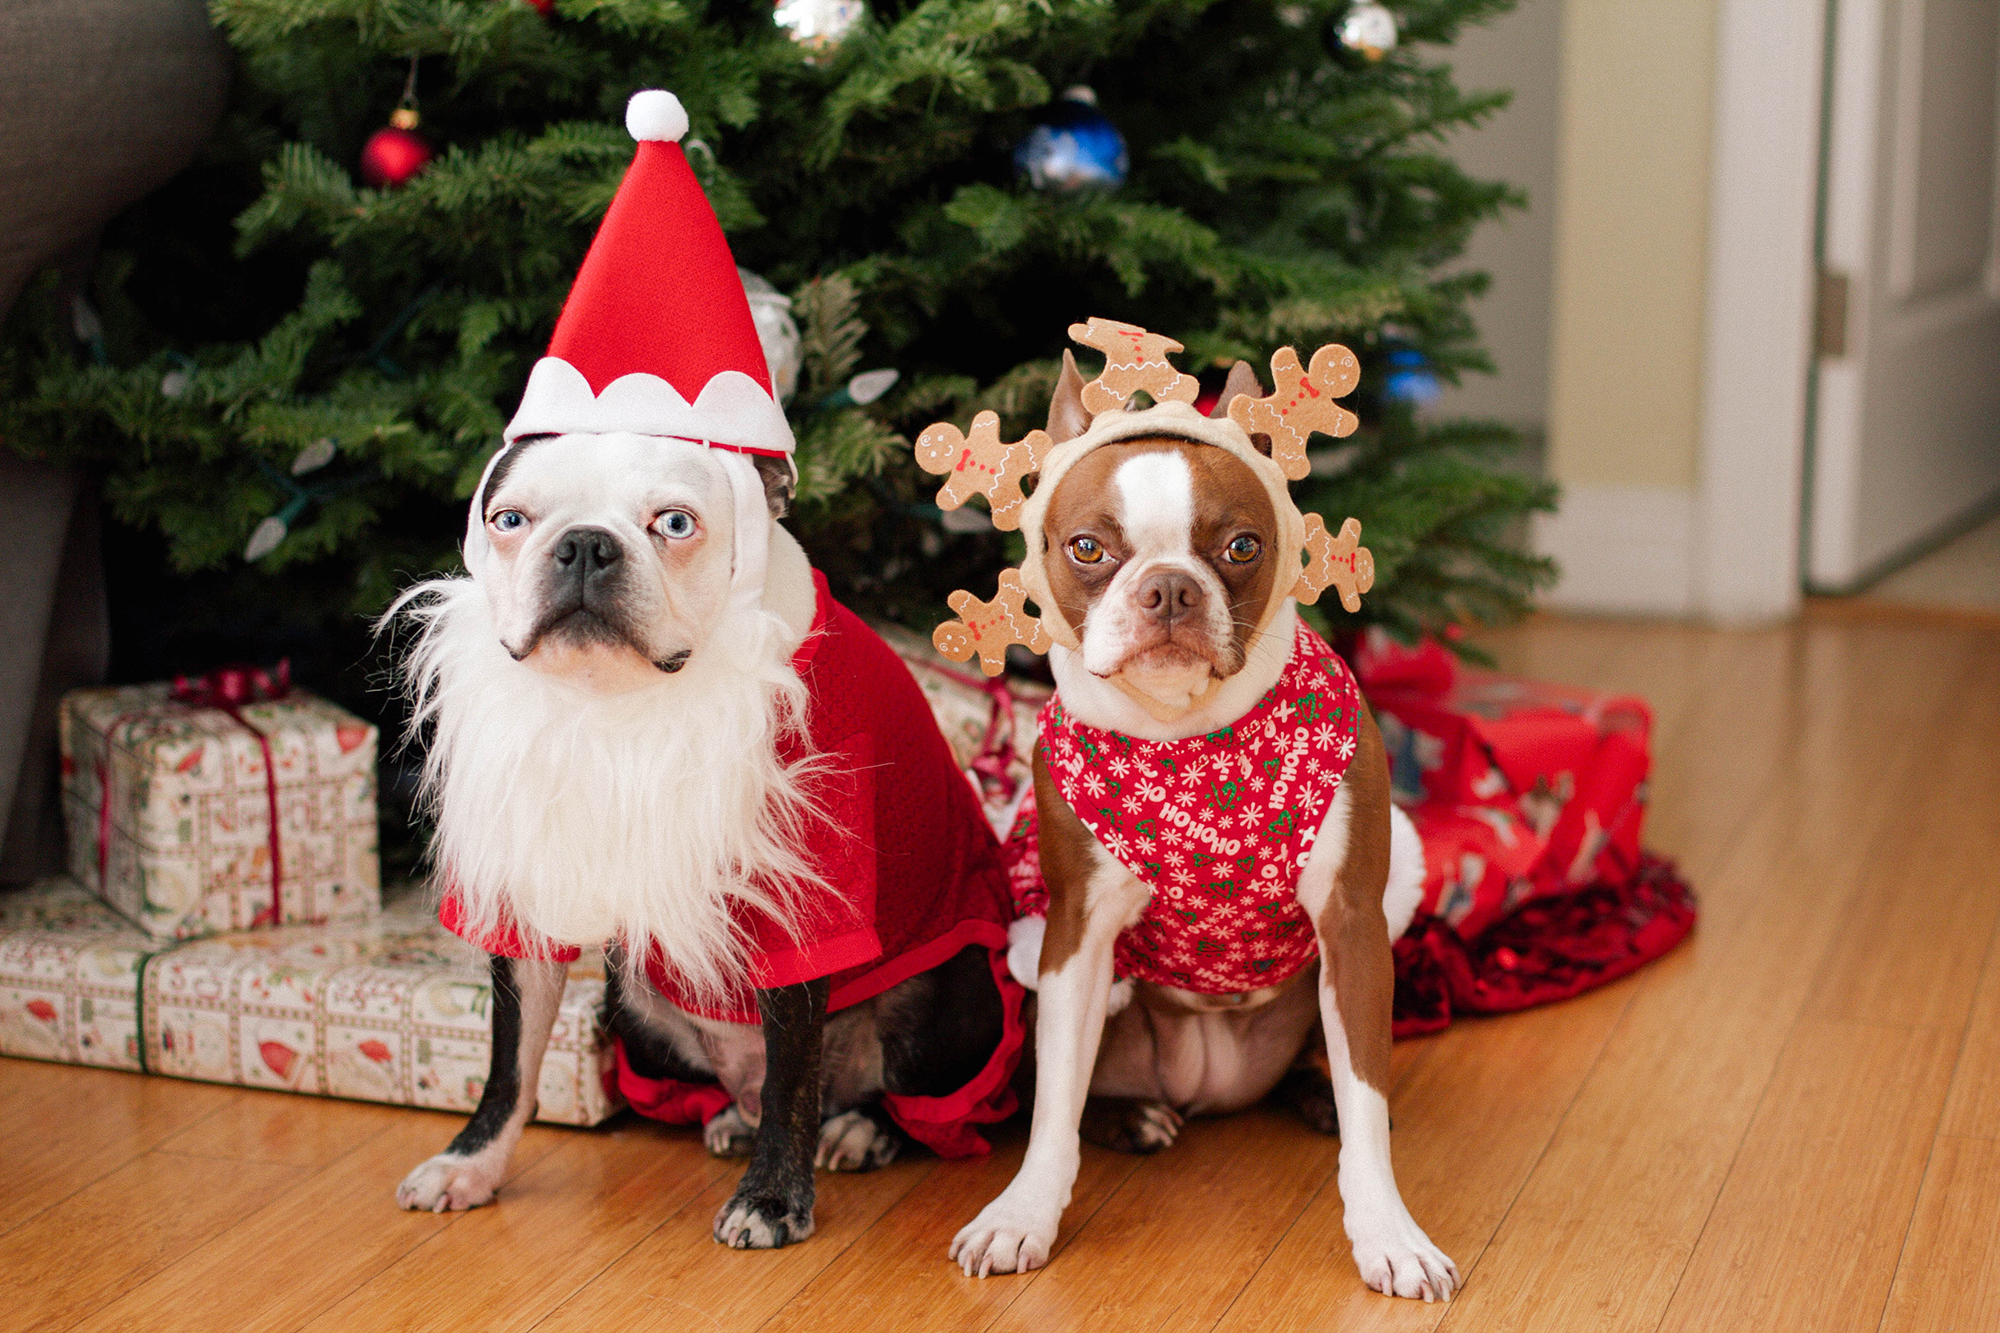 Dog Goes Viral For Existential Crisis In Christmas Picture Time